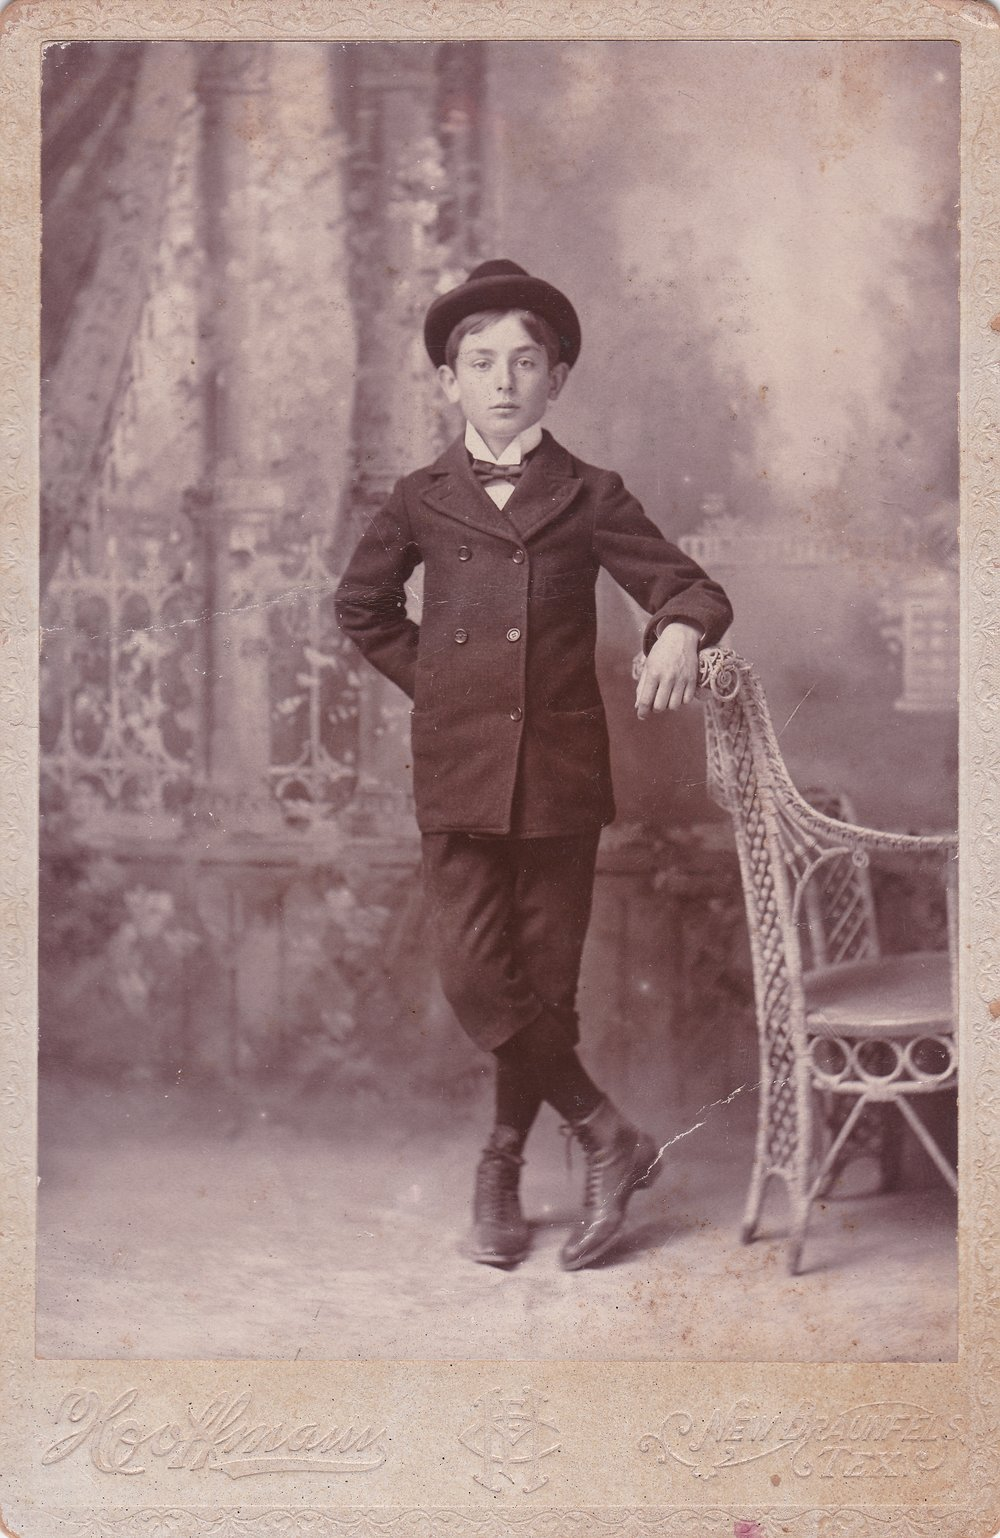 Vintage photo that I picked up at an antique fair of a boy wearing a hat.